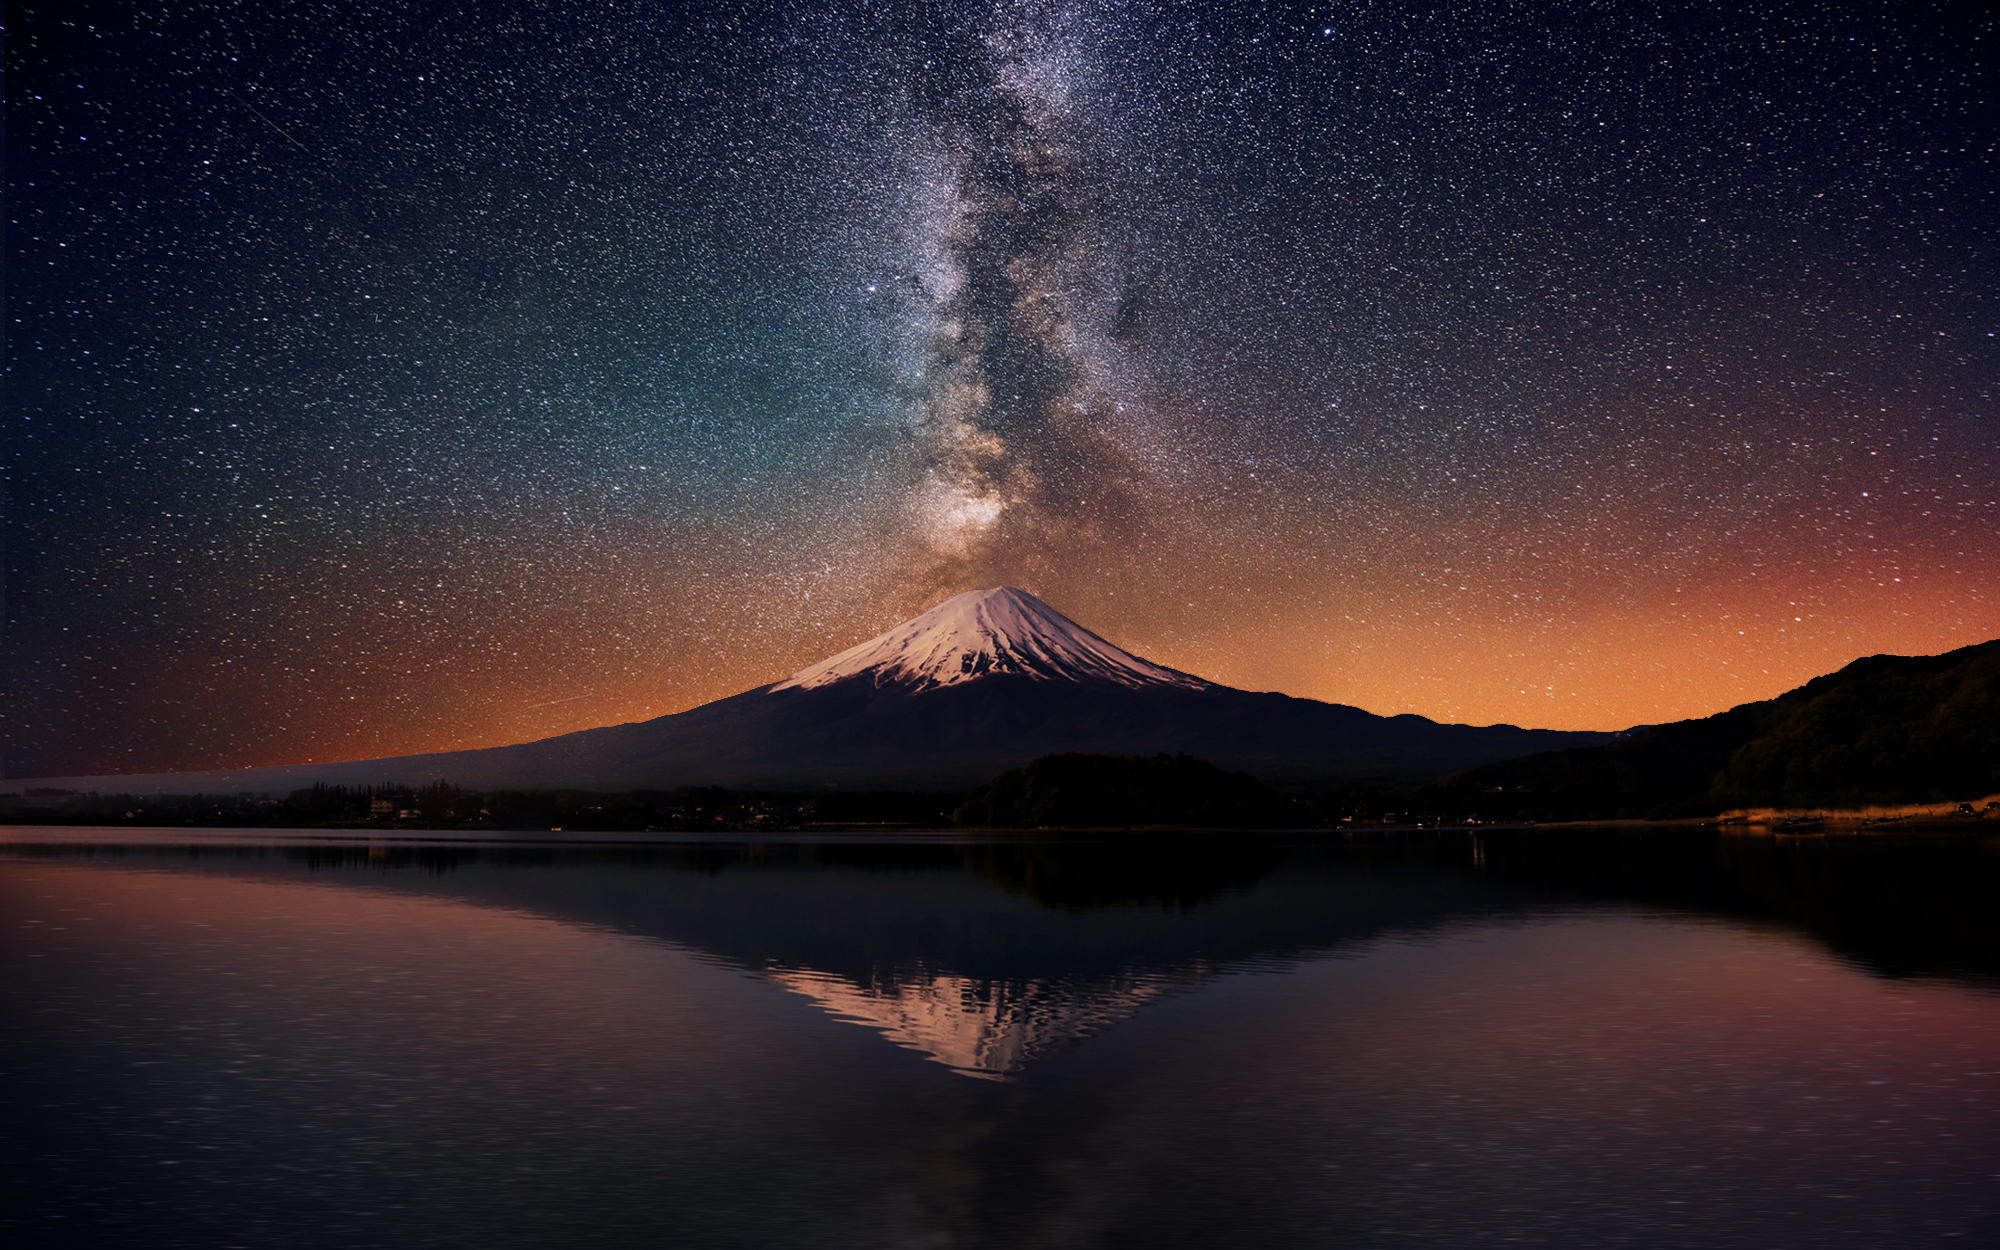 mt fuji & the galaxy